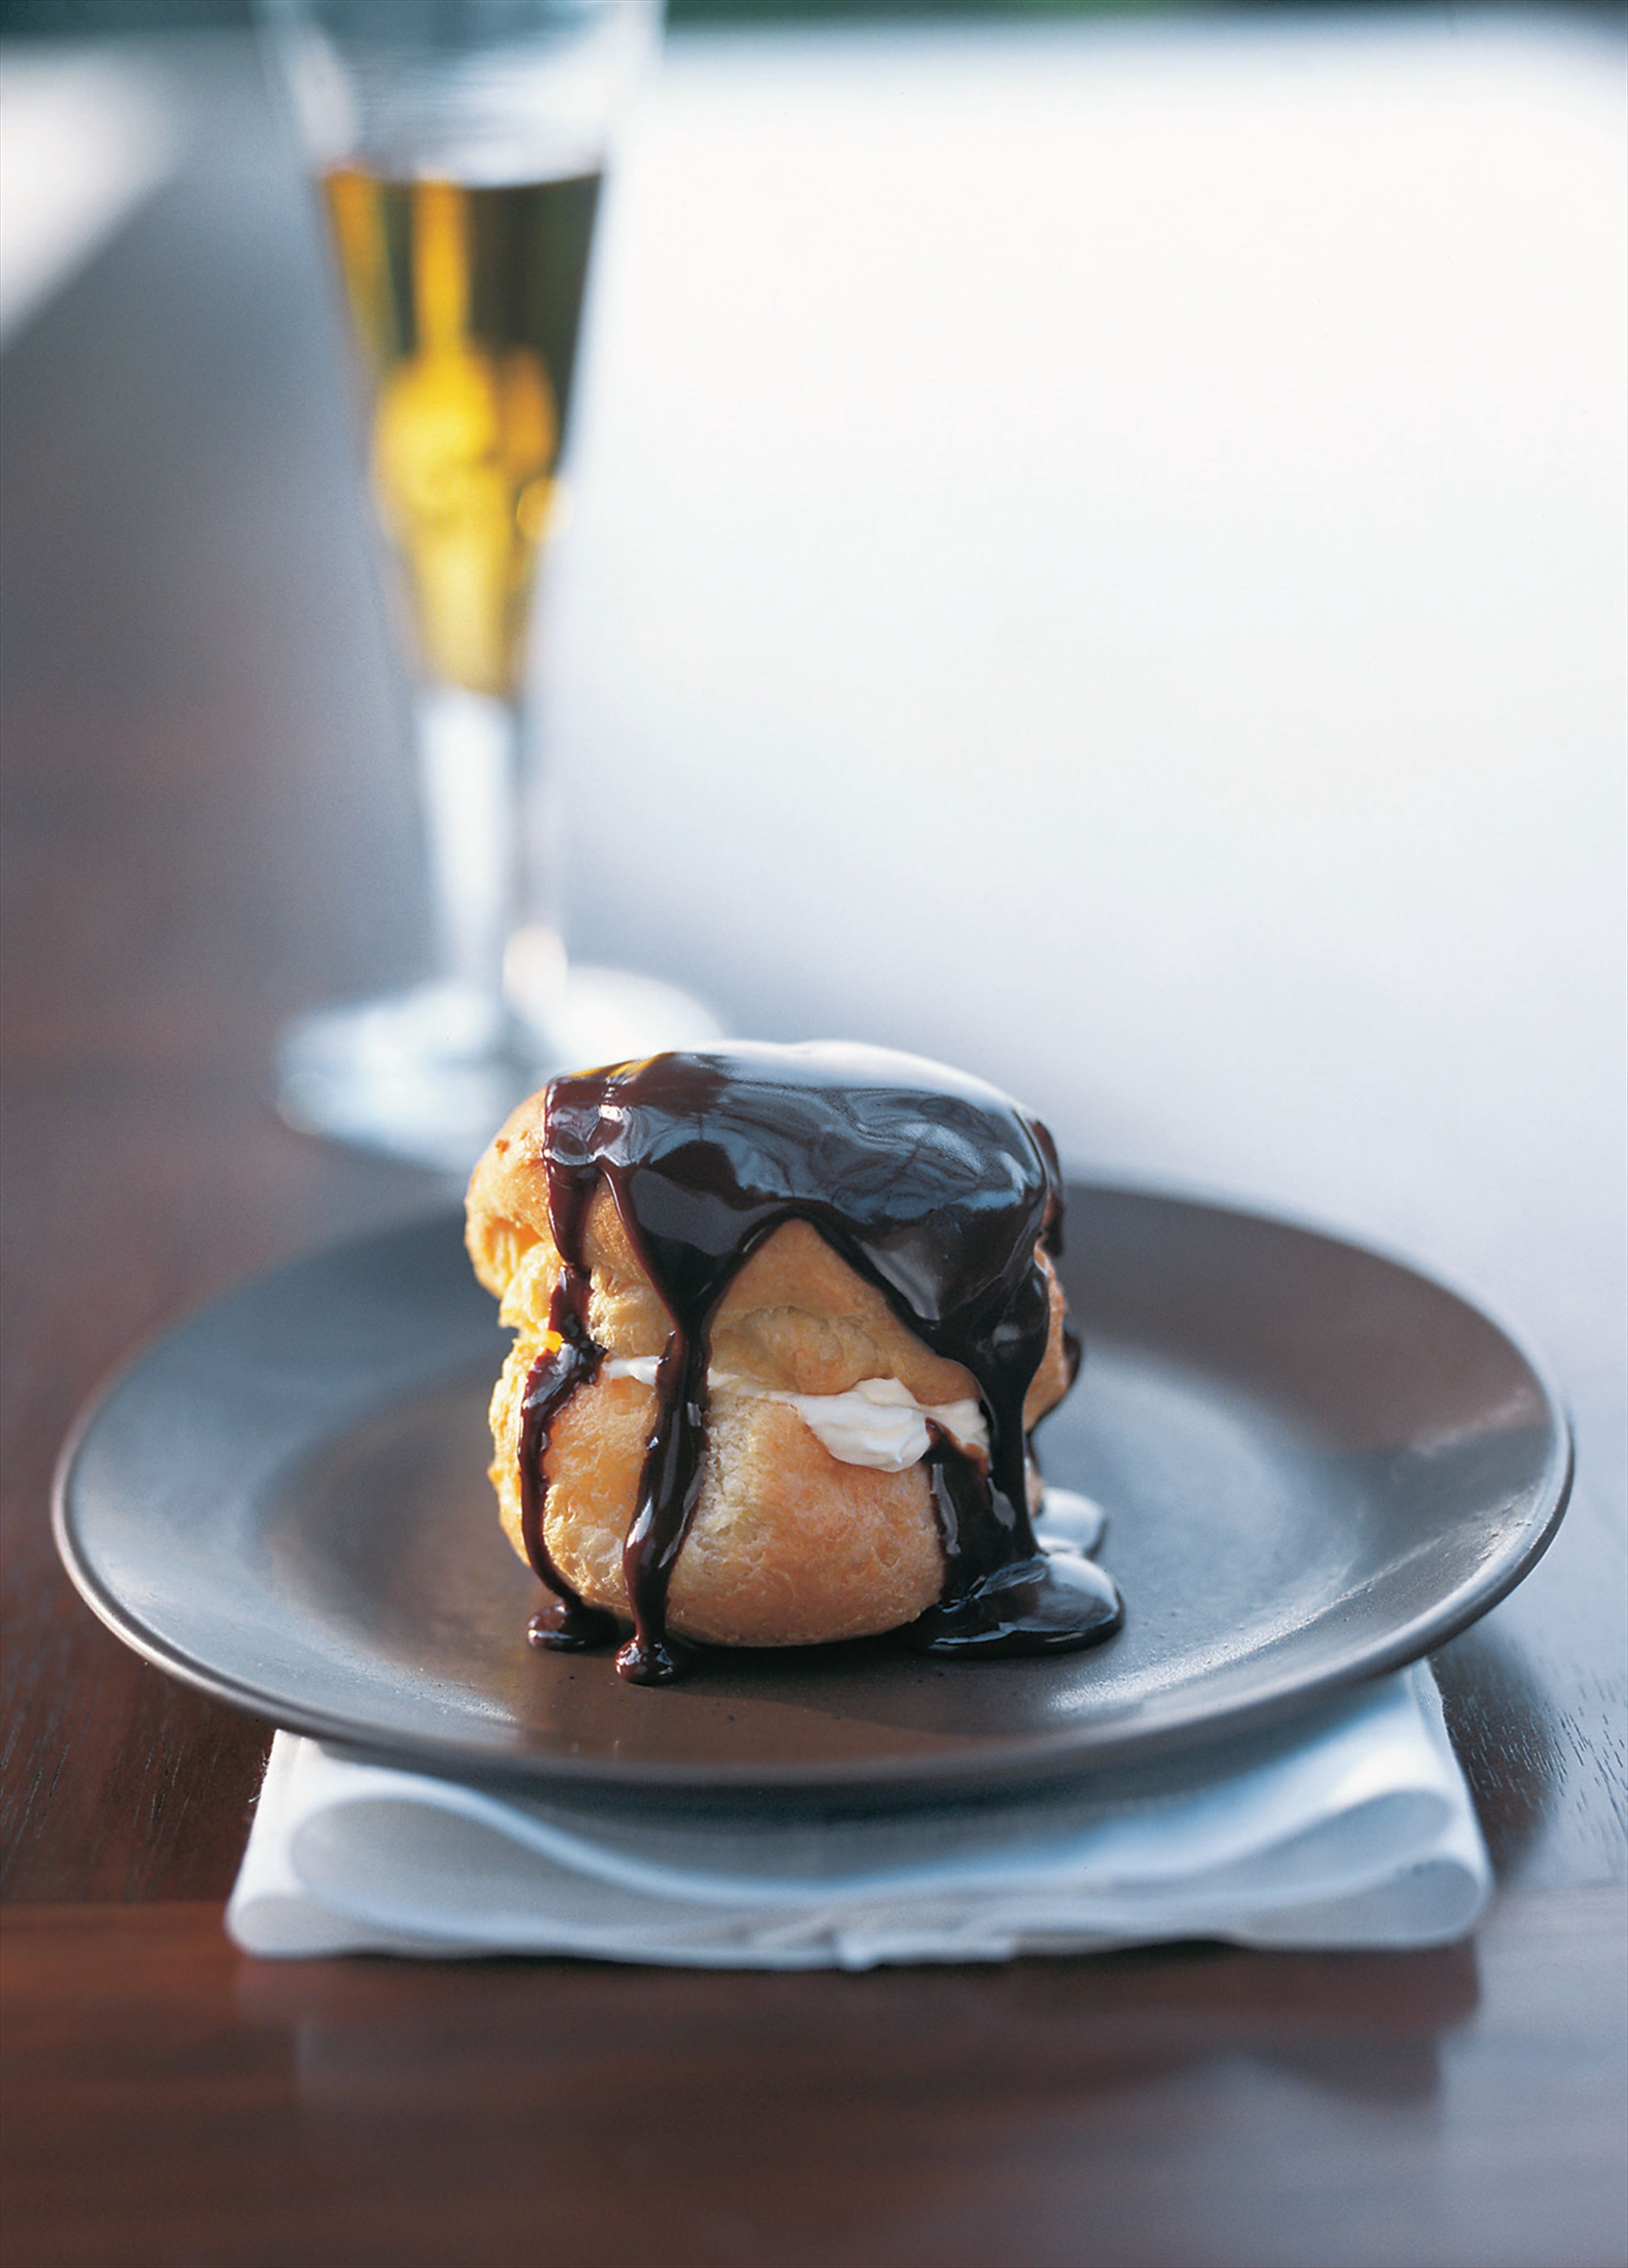 Profiteroles with chocolate sauce